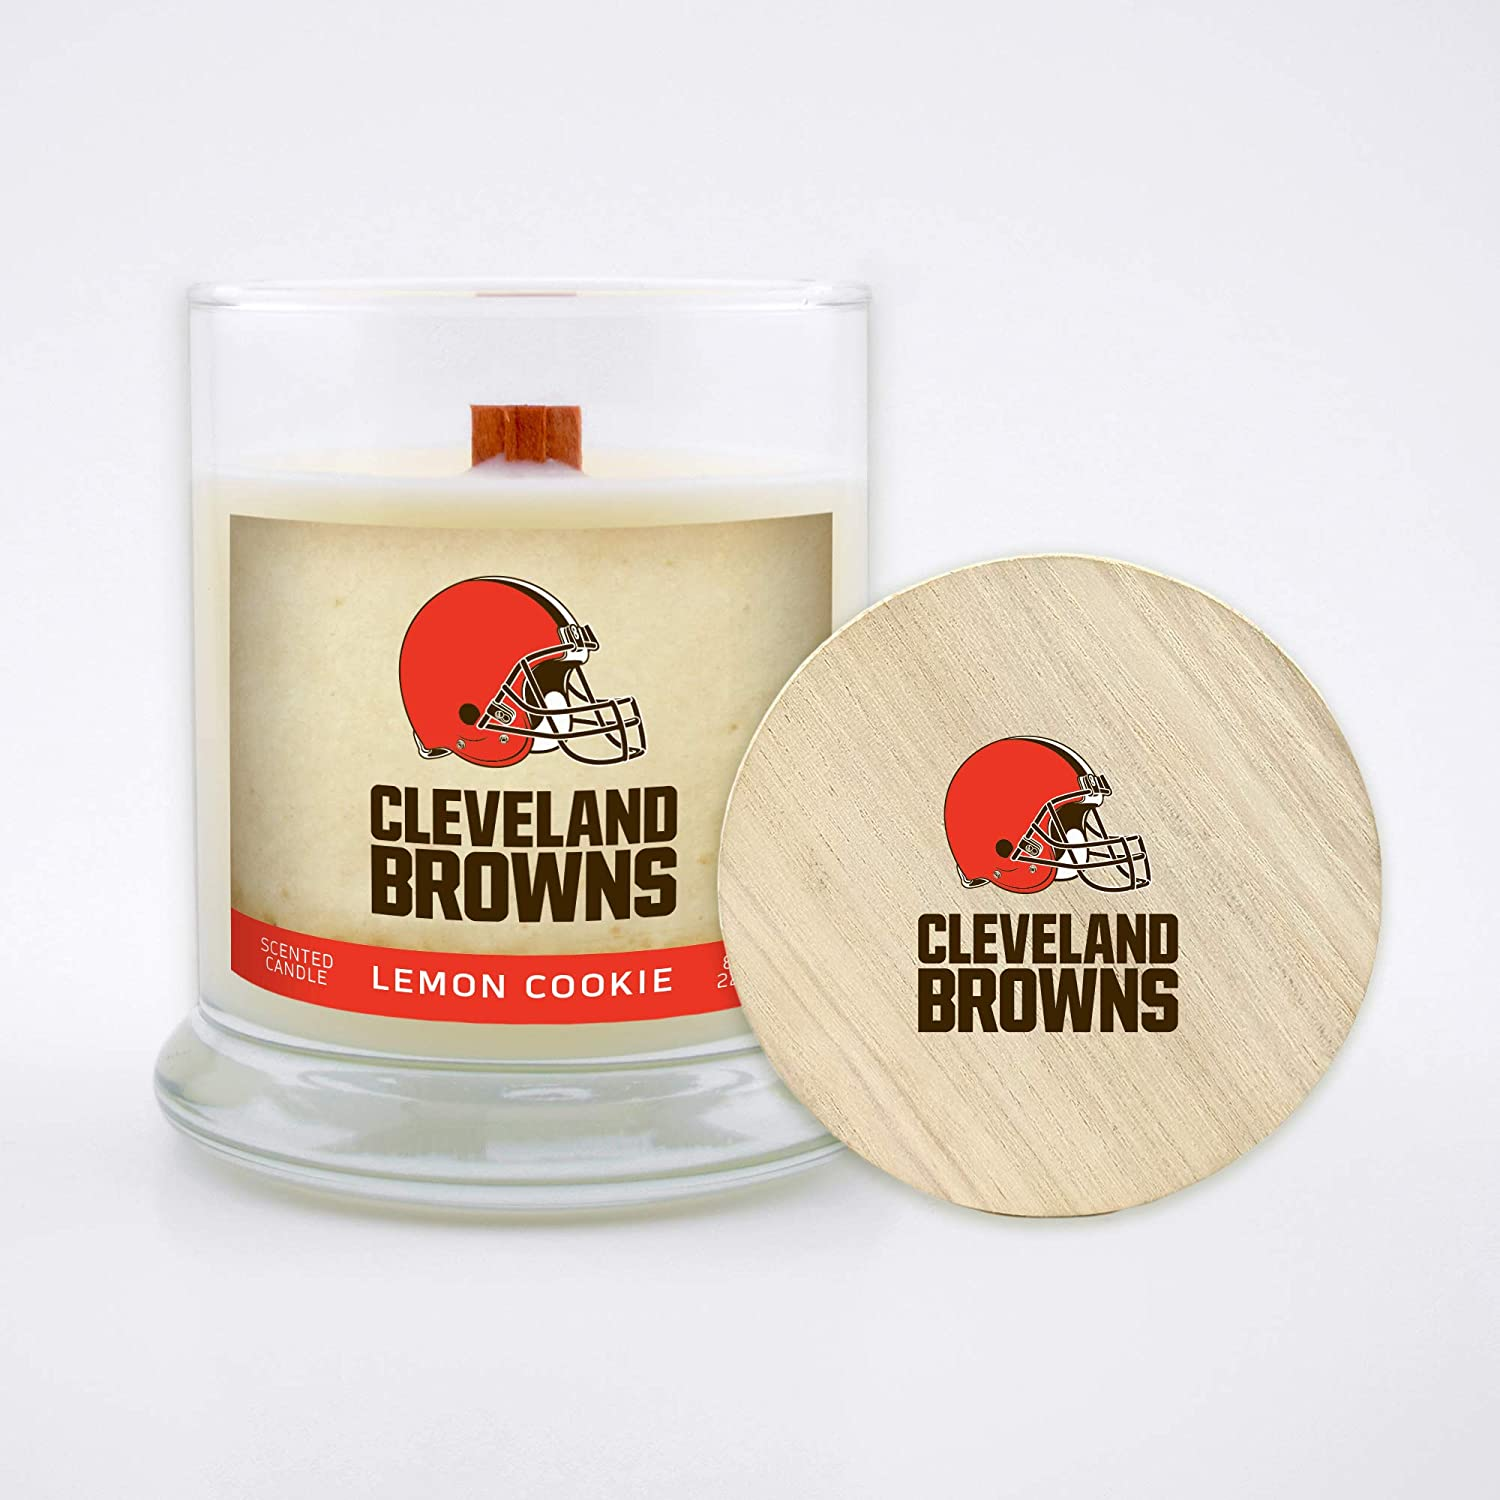 Lemon Cookie Worthy Promo NFL Cleveland Browns Gifts 8oz Scented Candle Soy Wax w//Wood Wick and Lid